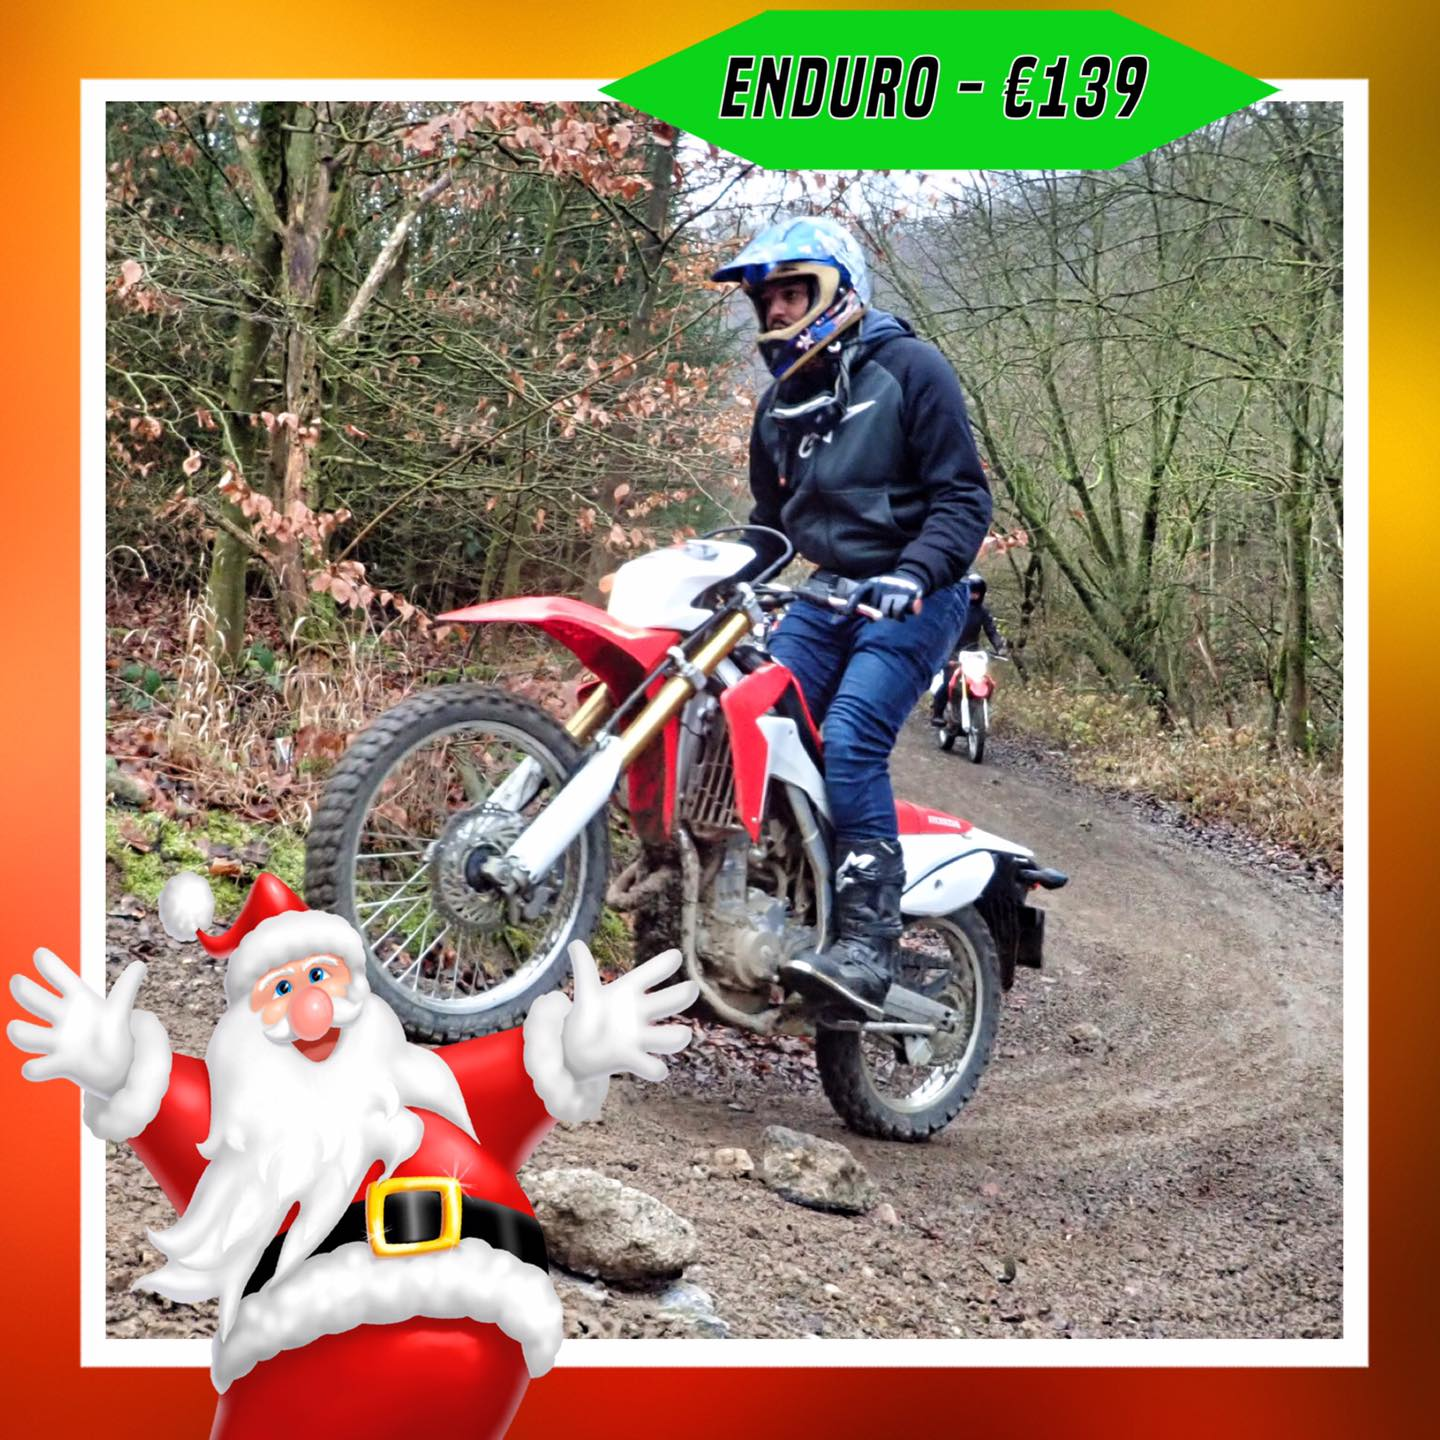 Kerst-initiaties Bilstain Endurofun 17